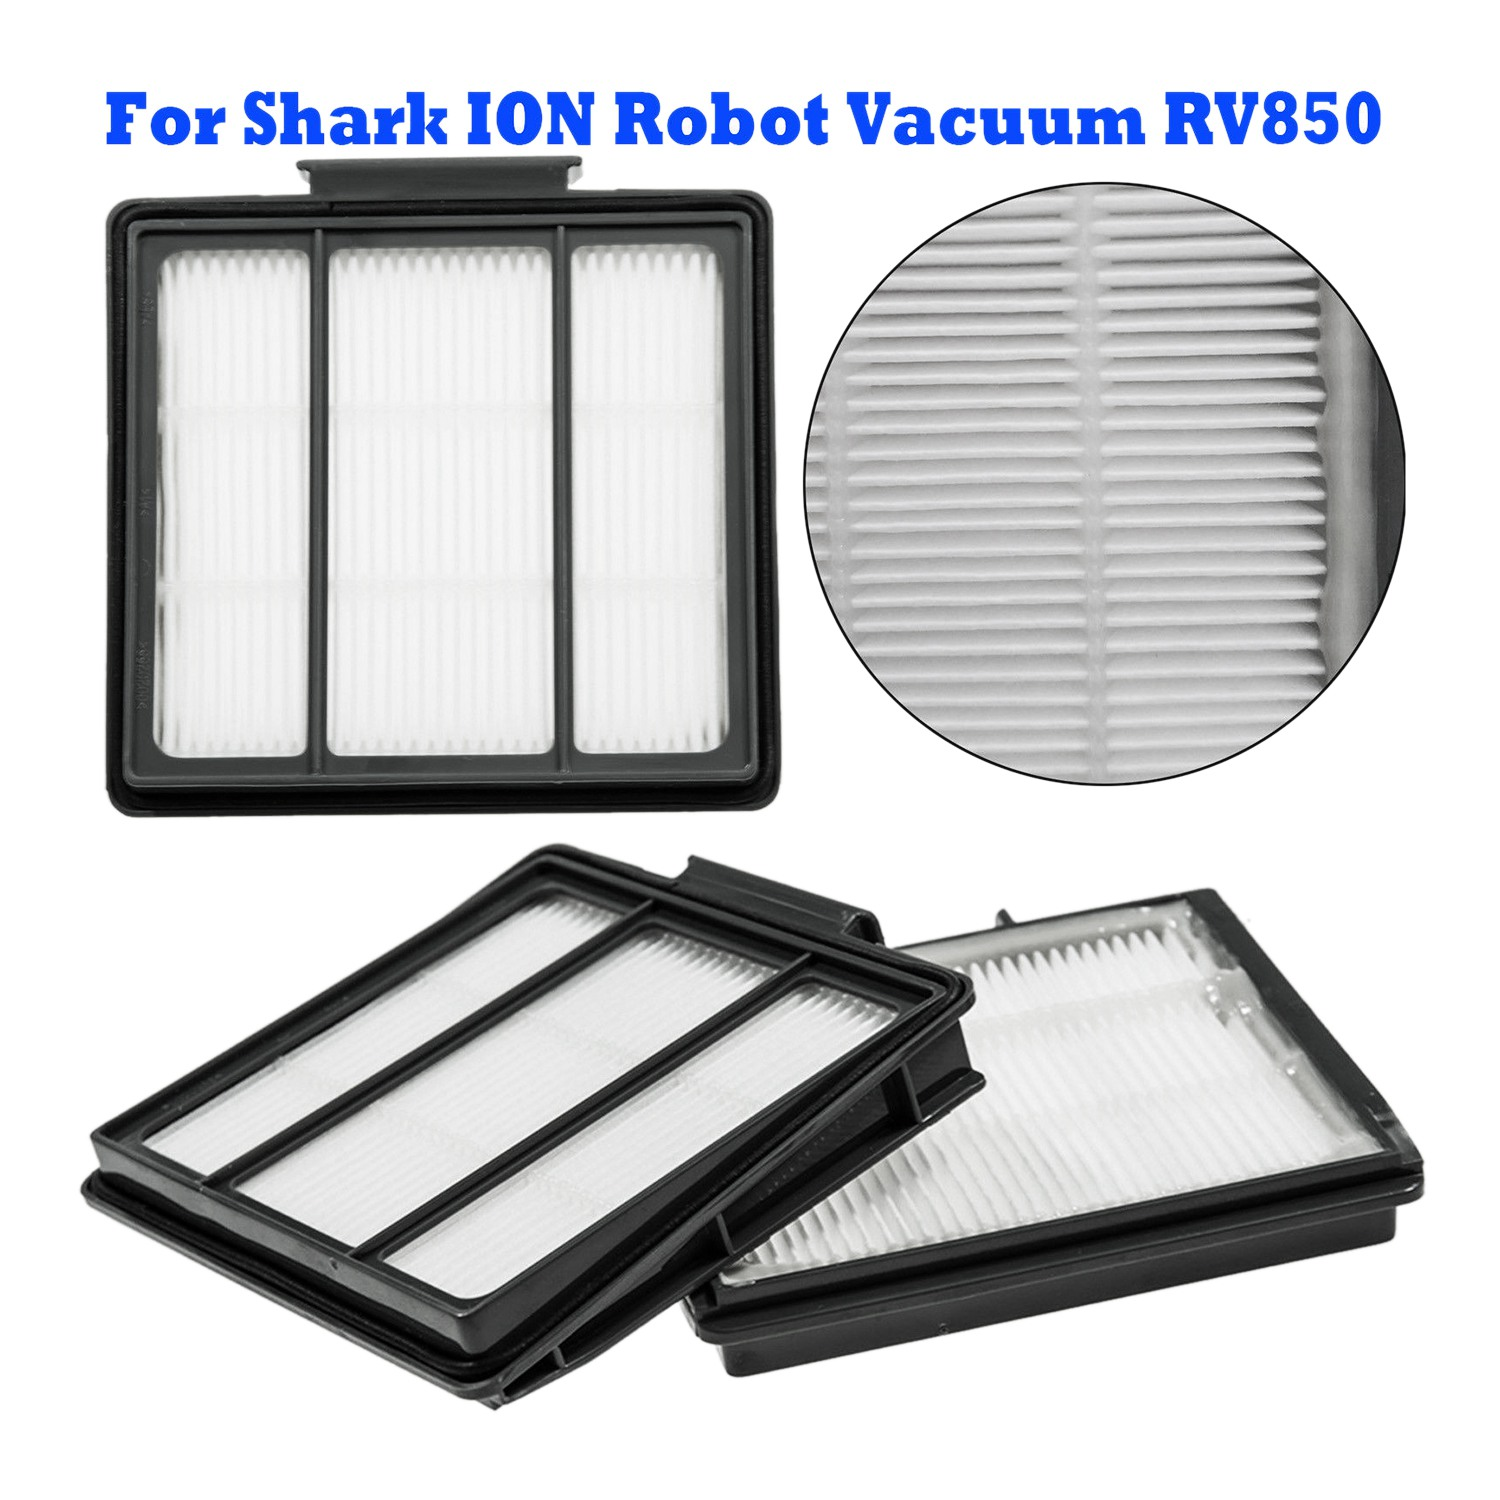 Rapture Vacuum Cleaner Hepa Filter Kit Replacement For Shark Ion Robot Vacuum Rv850 With Wlan To Win A High Admiration And Is Widely Trusted At Home And Abroad. Home Appliances